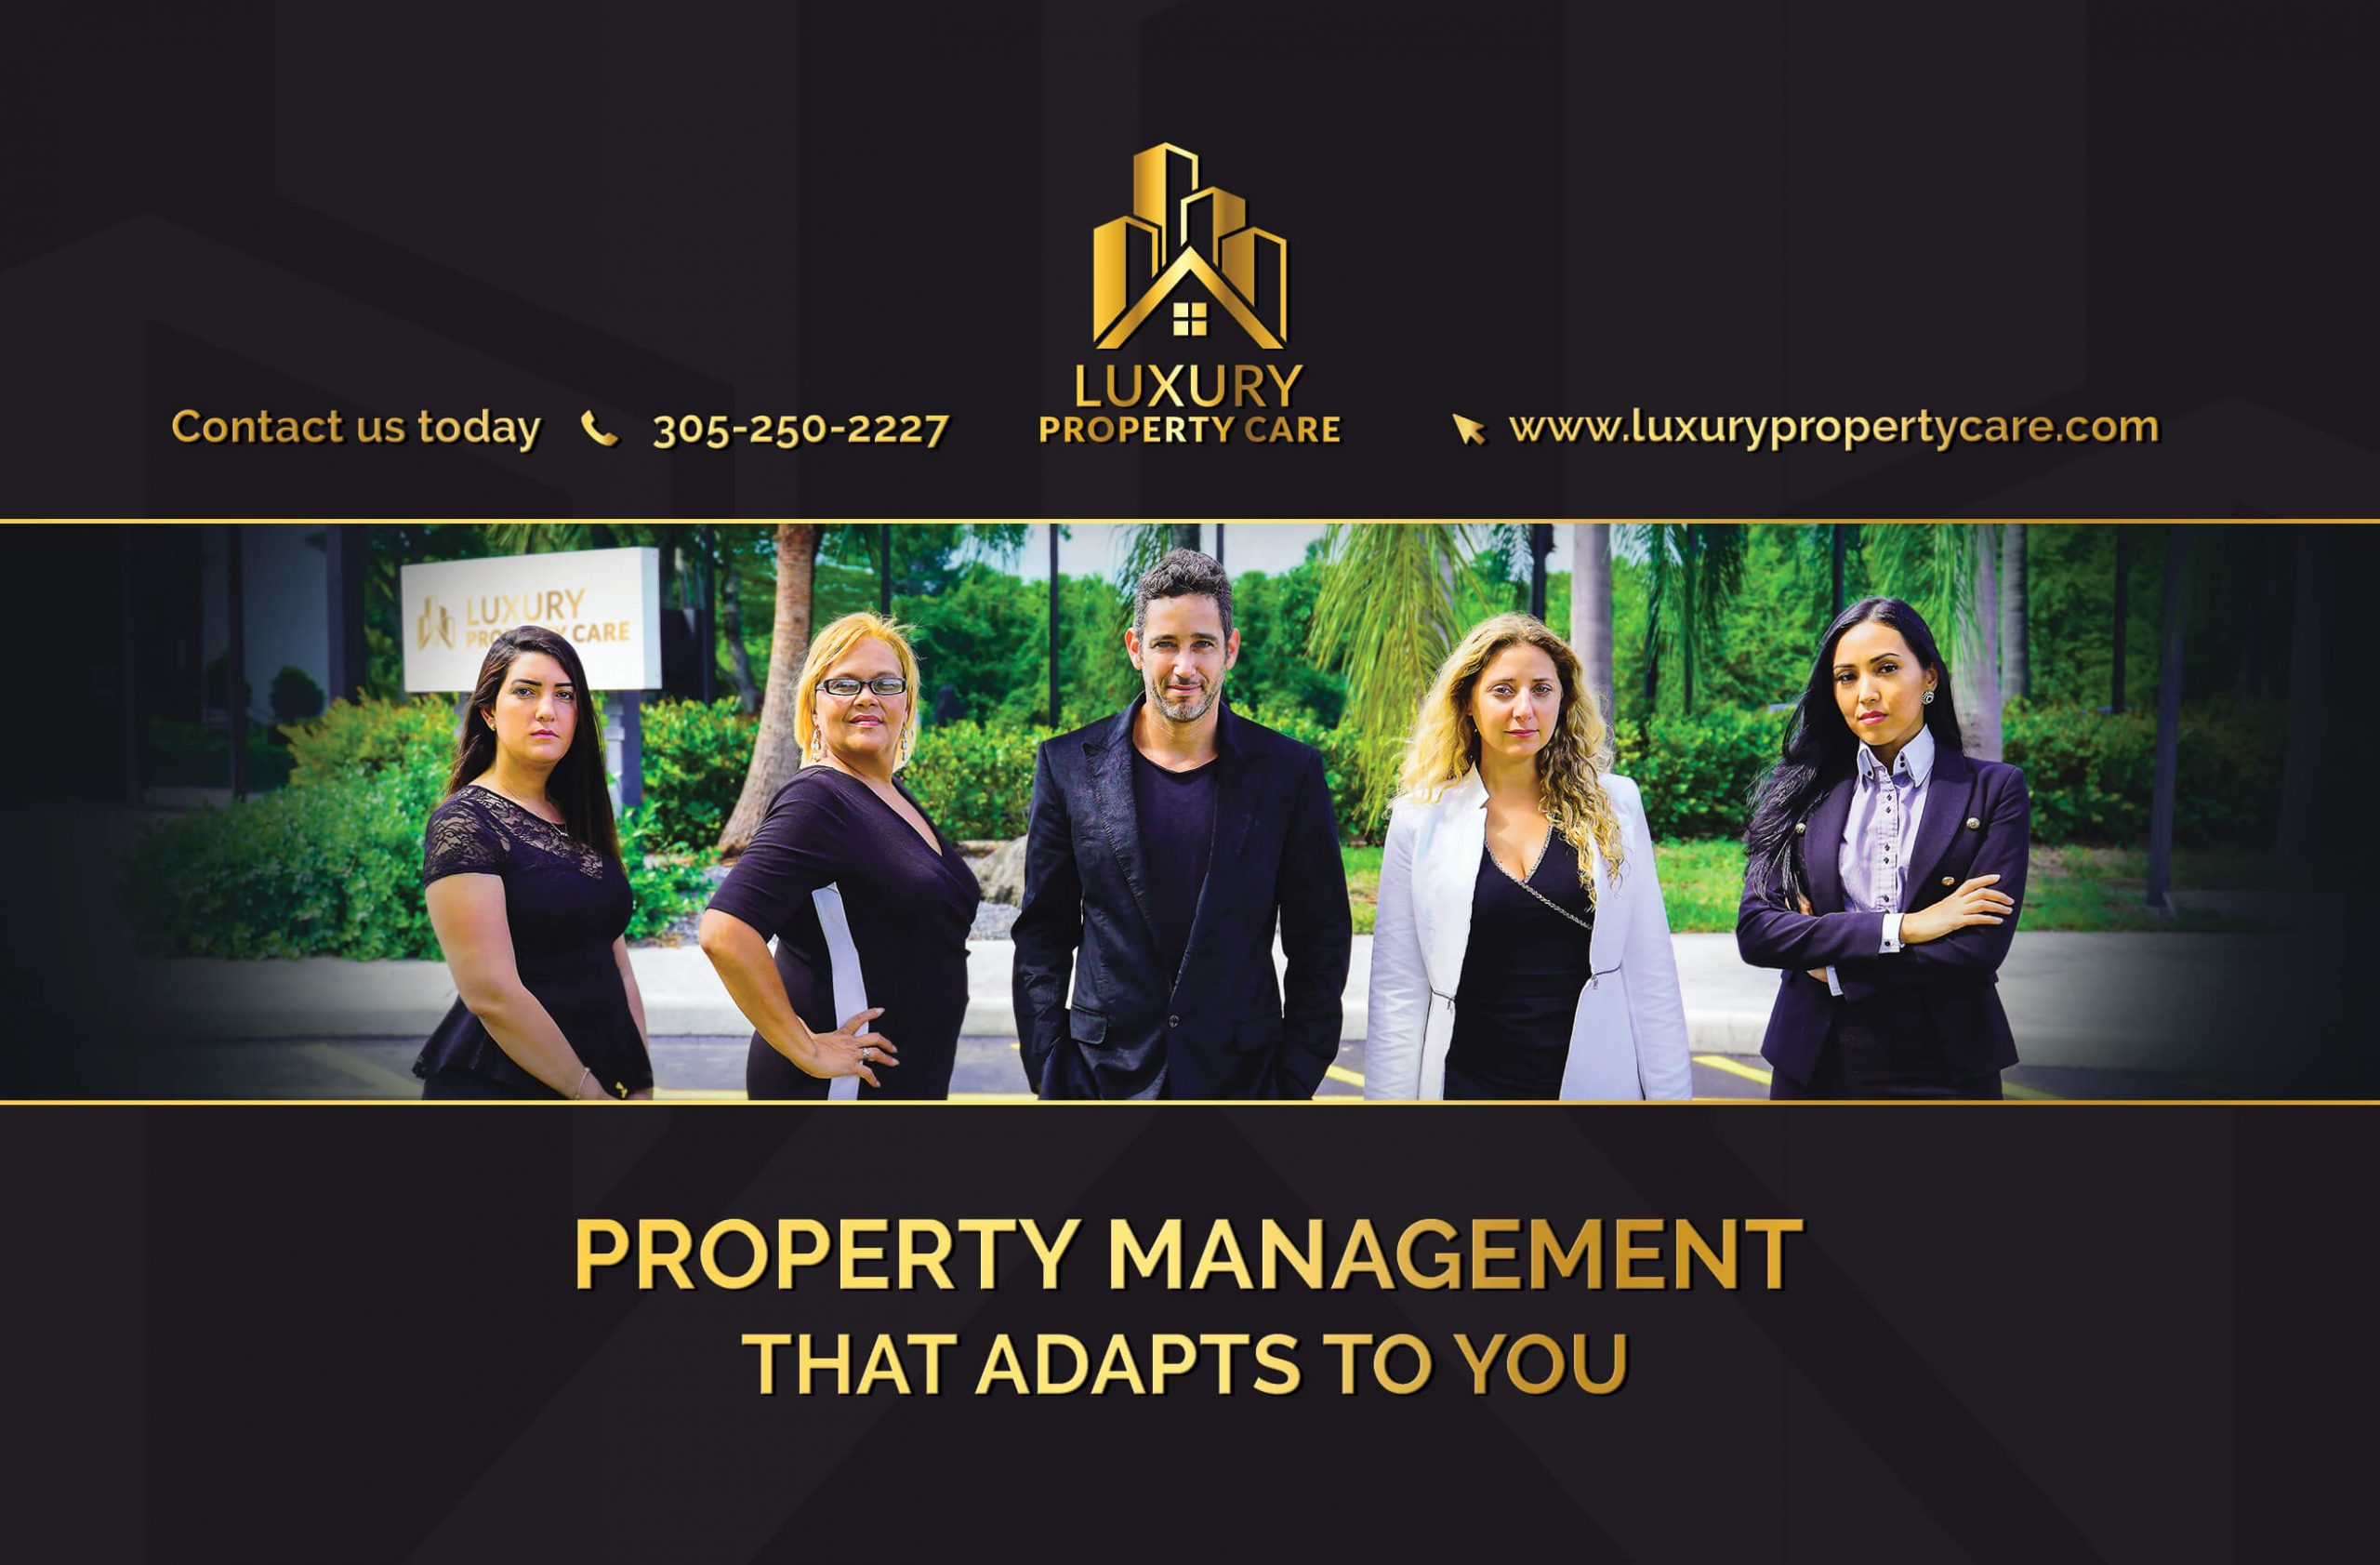 Luxury property care: Expert shopping center managers